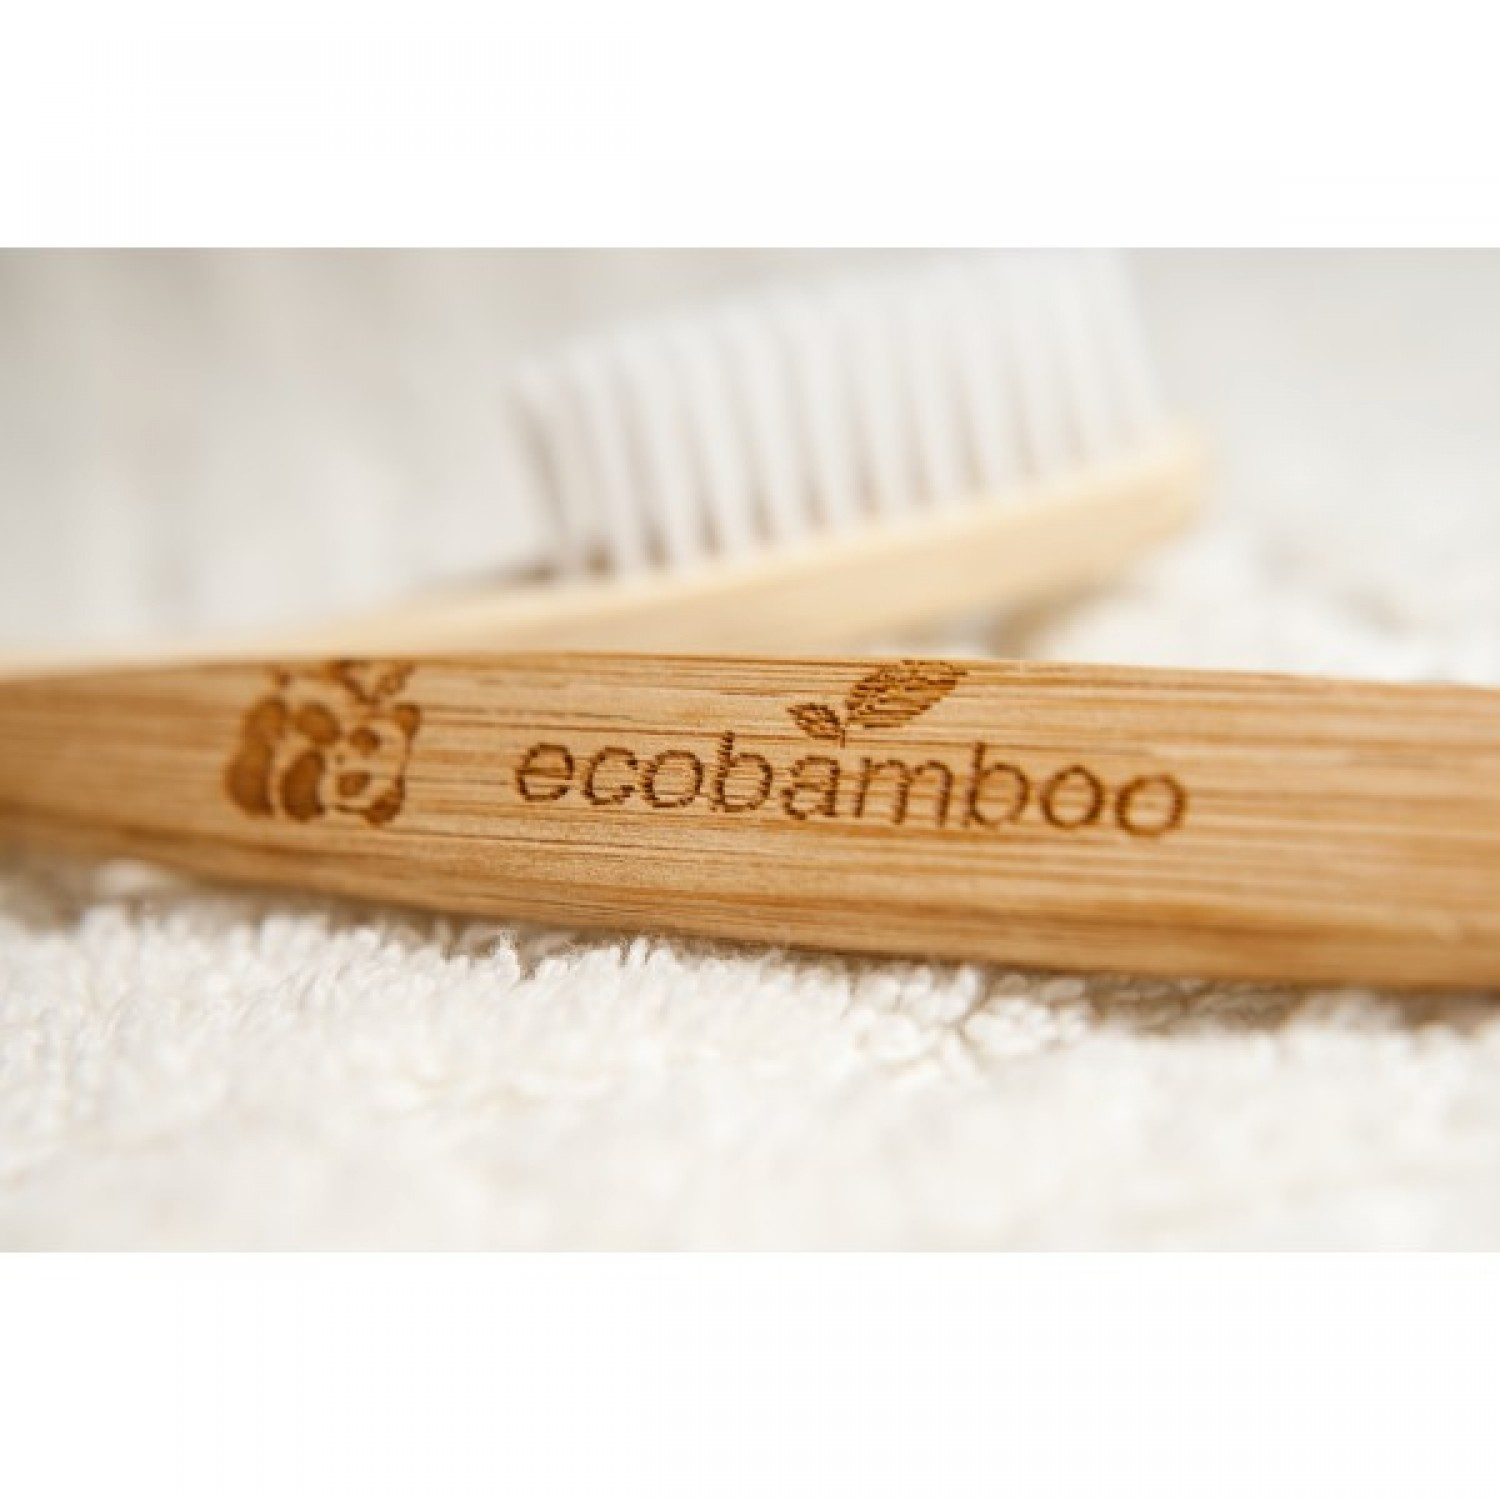 Eco toothbrush for children made of bamboo | ecobamboo